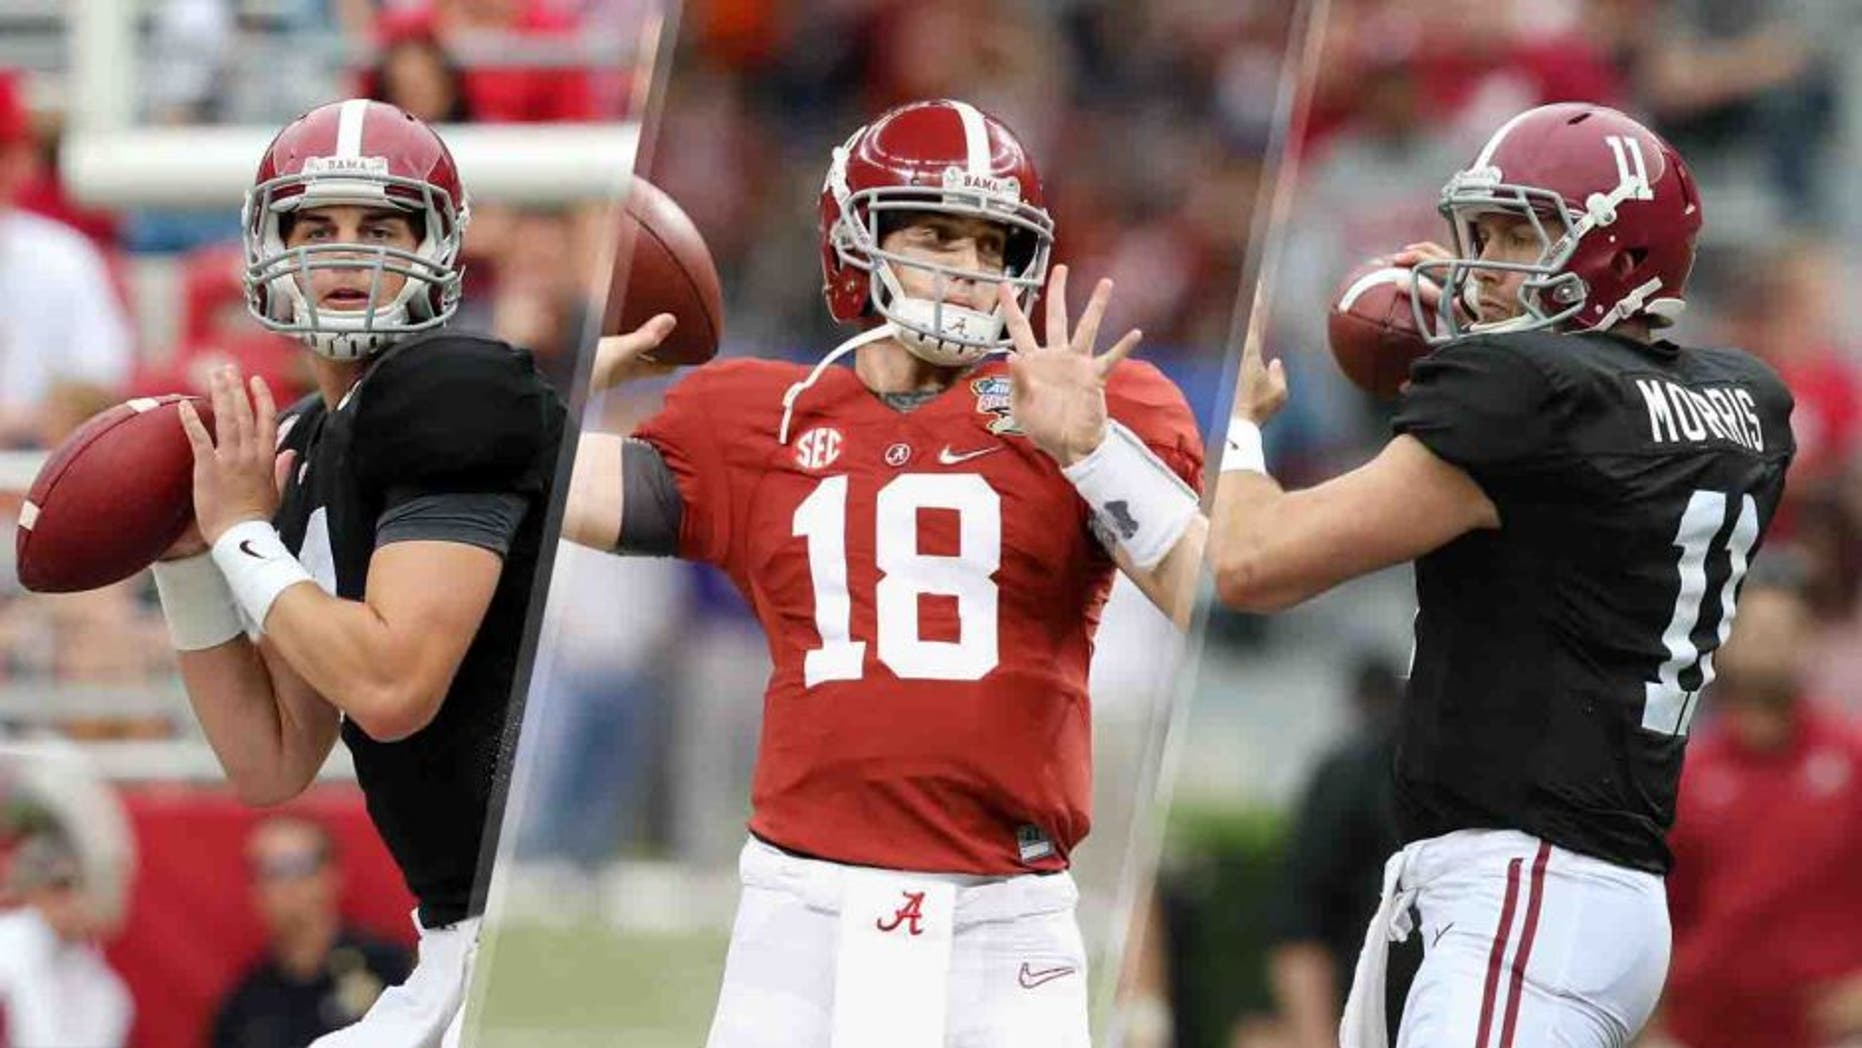 With the Badgers coming to visit Saturday, the Crimson Tide still have three different quarterbacks sharing the No. 1 spot on the depth chart: Jake Coker (left), Cooper Bateman (center) and Alec Morris.